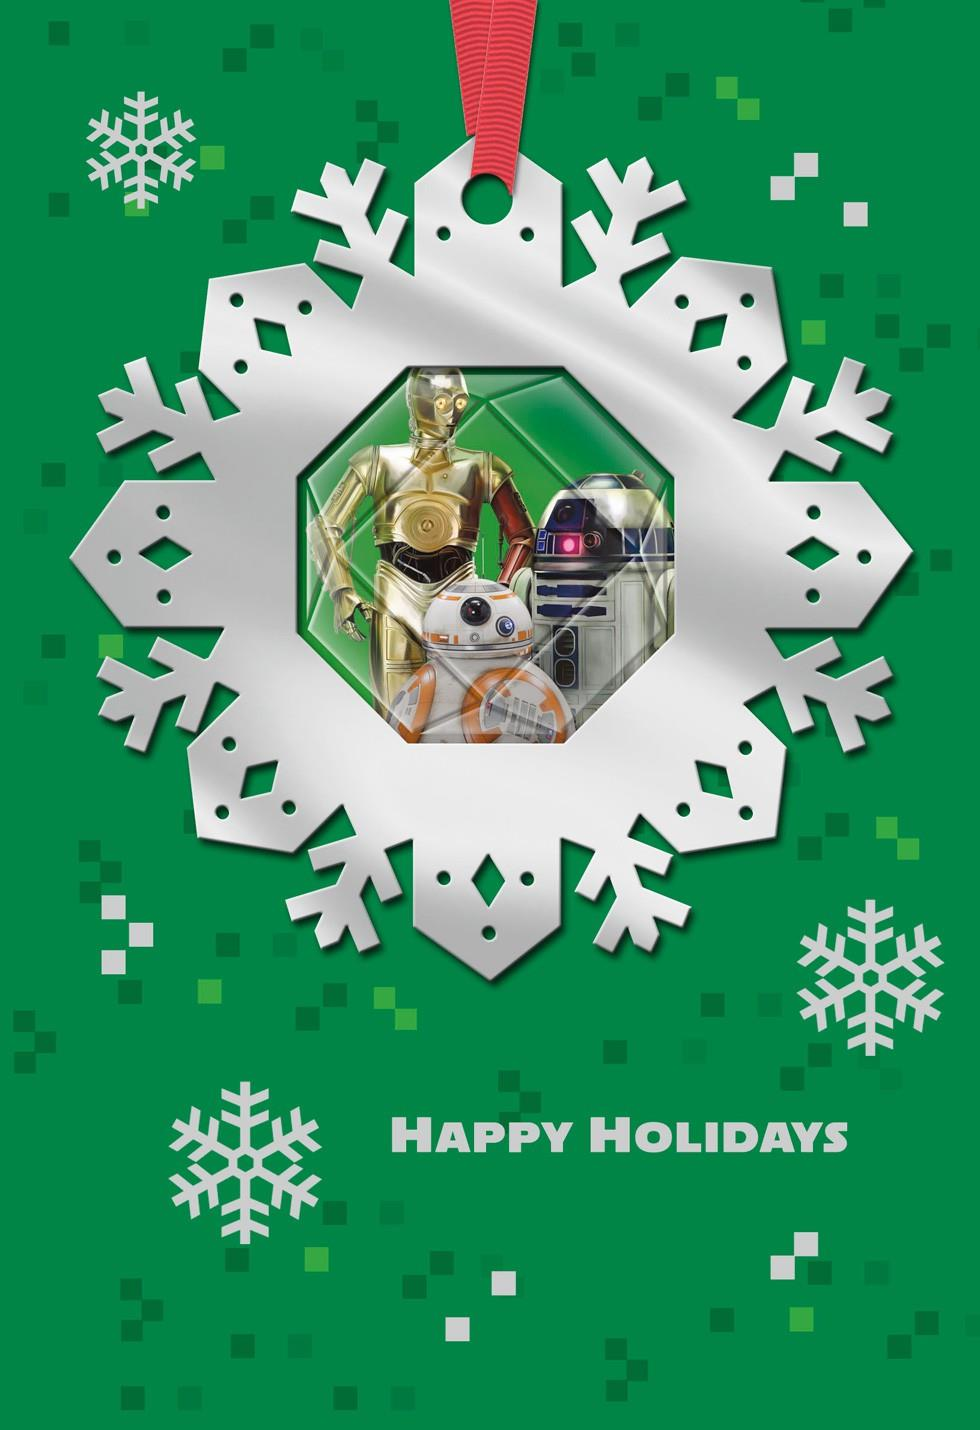 Star Wars Droids Christmas Card With Ornament Greeting